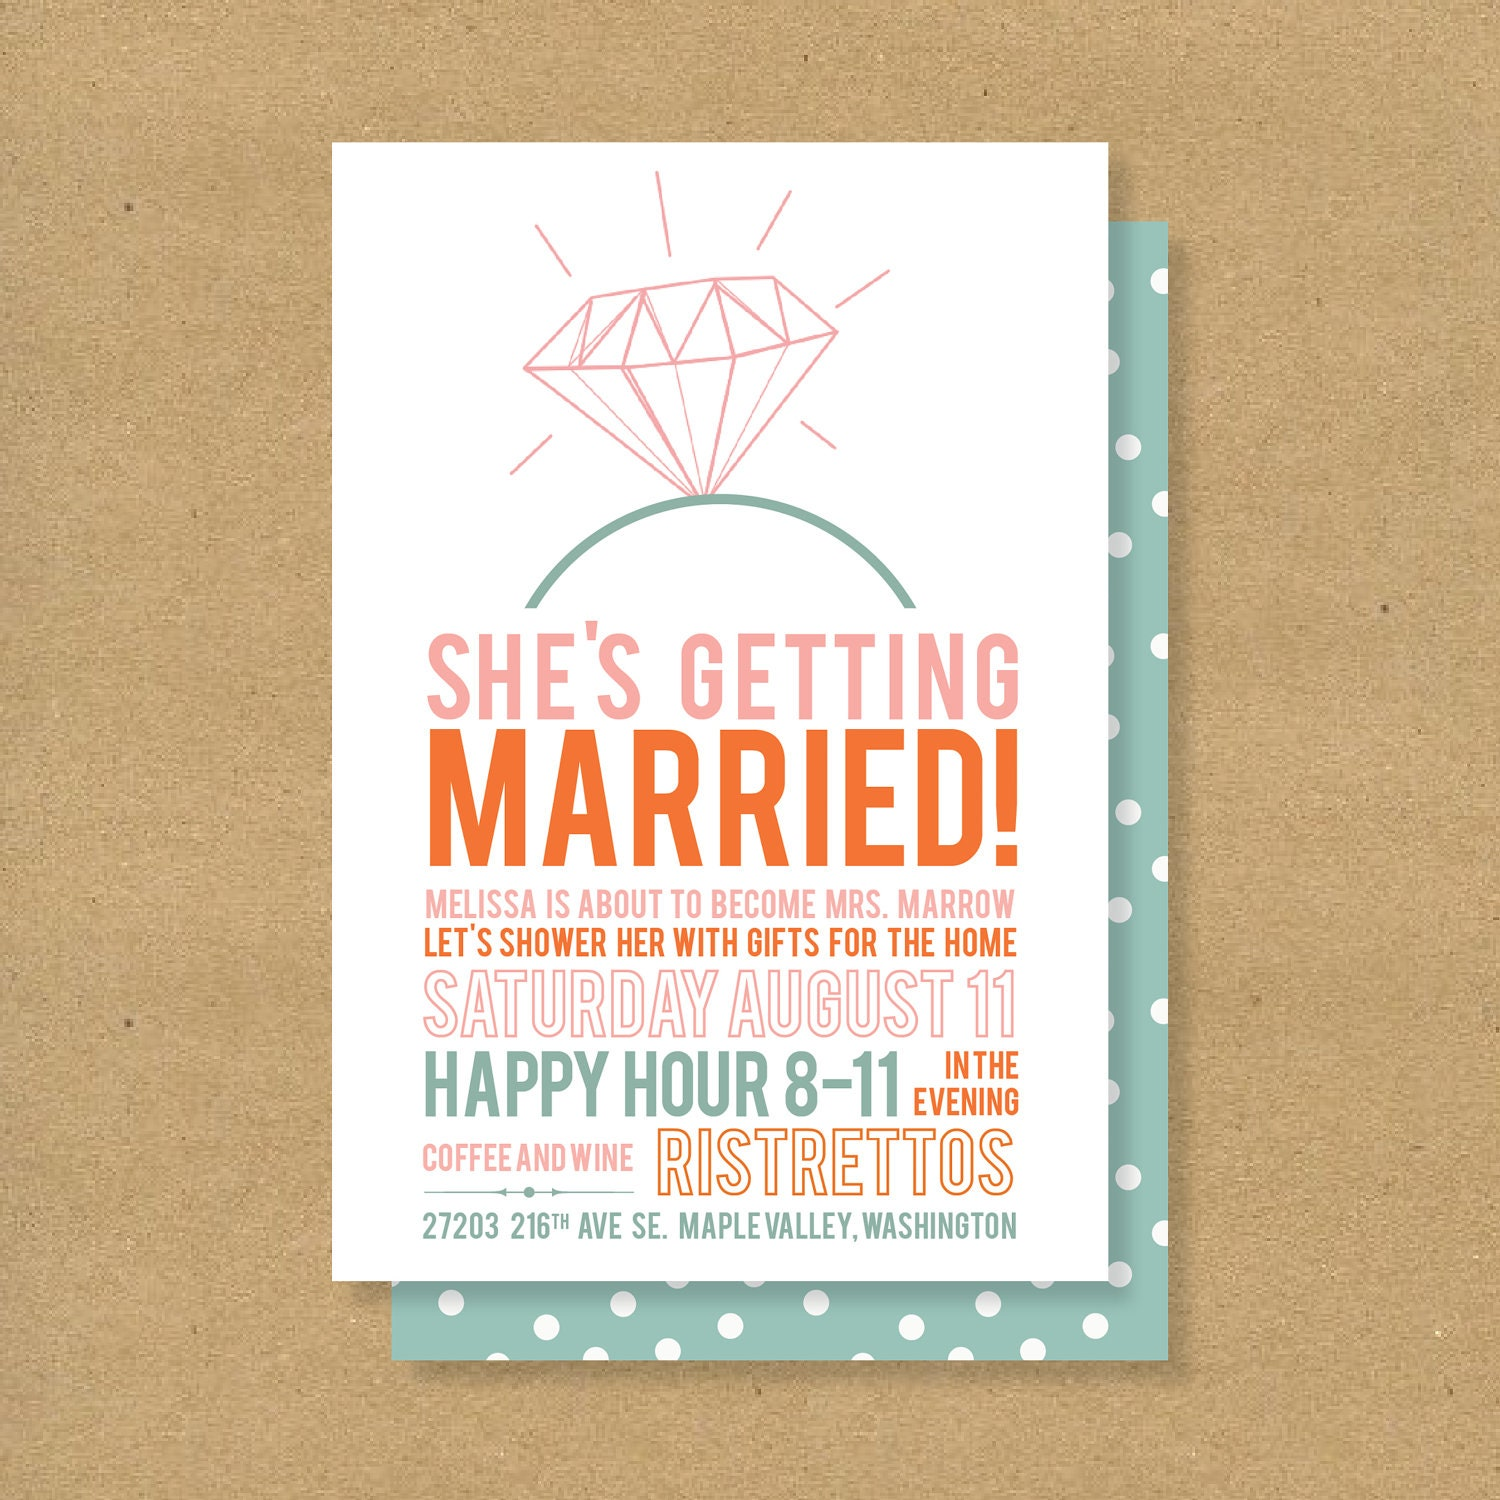 Transformative image with regard to printable shower invitations